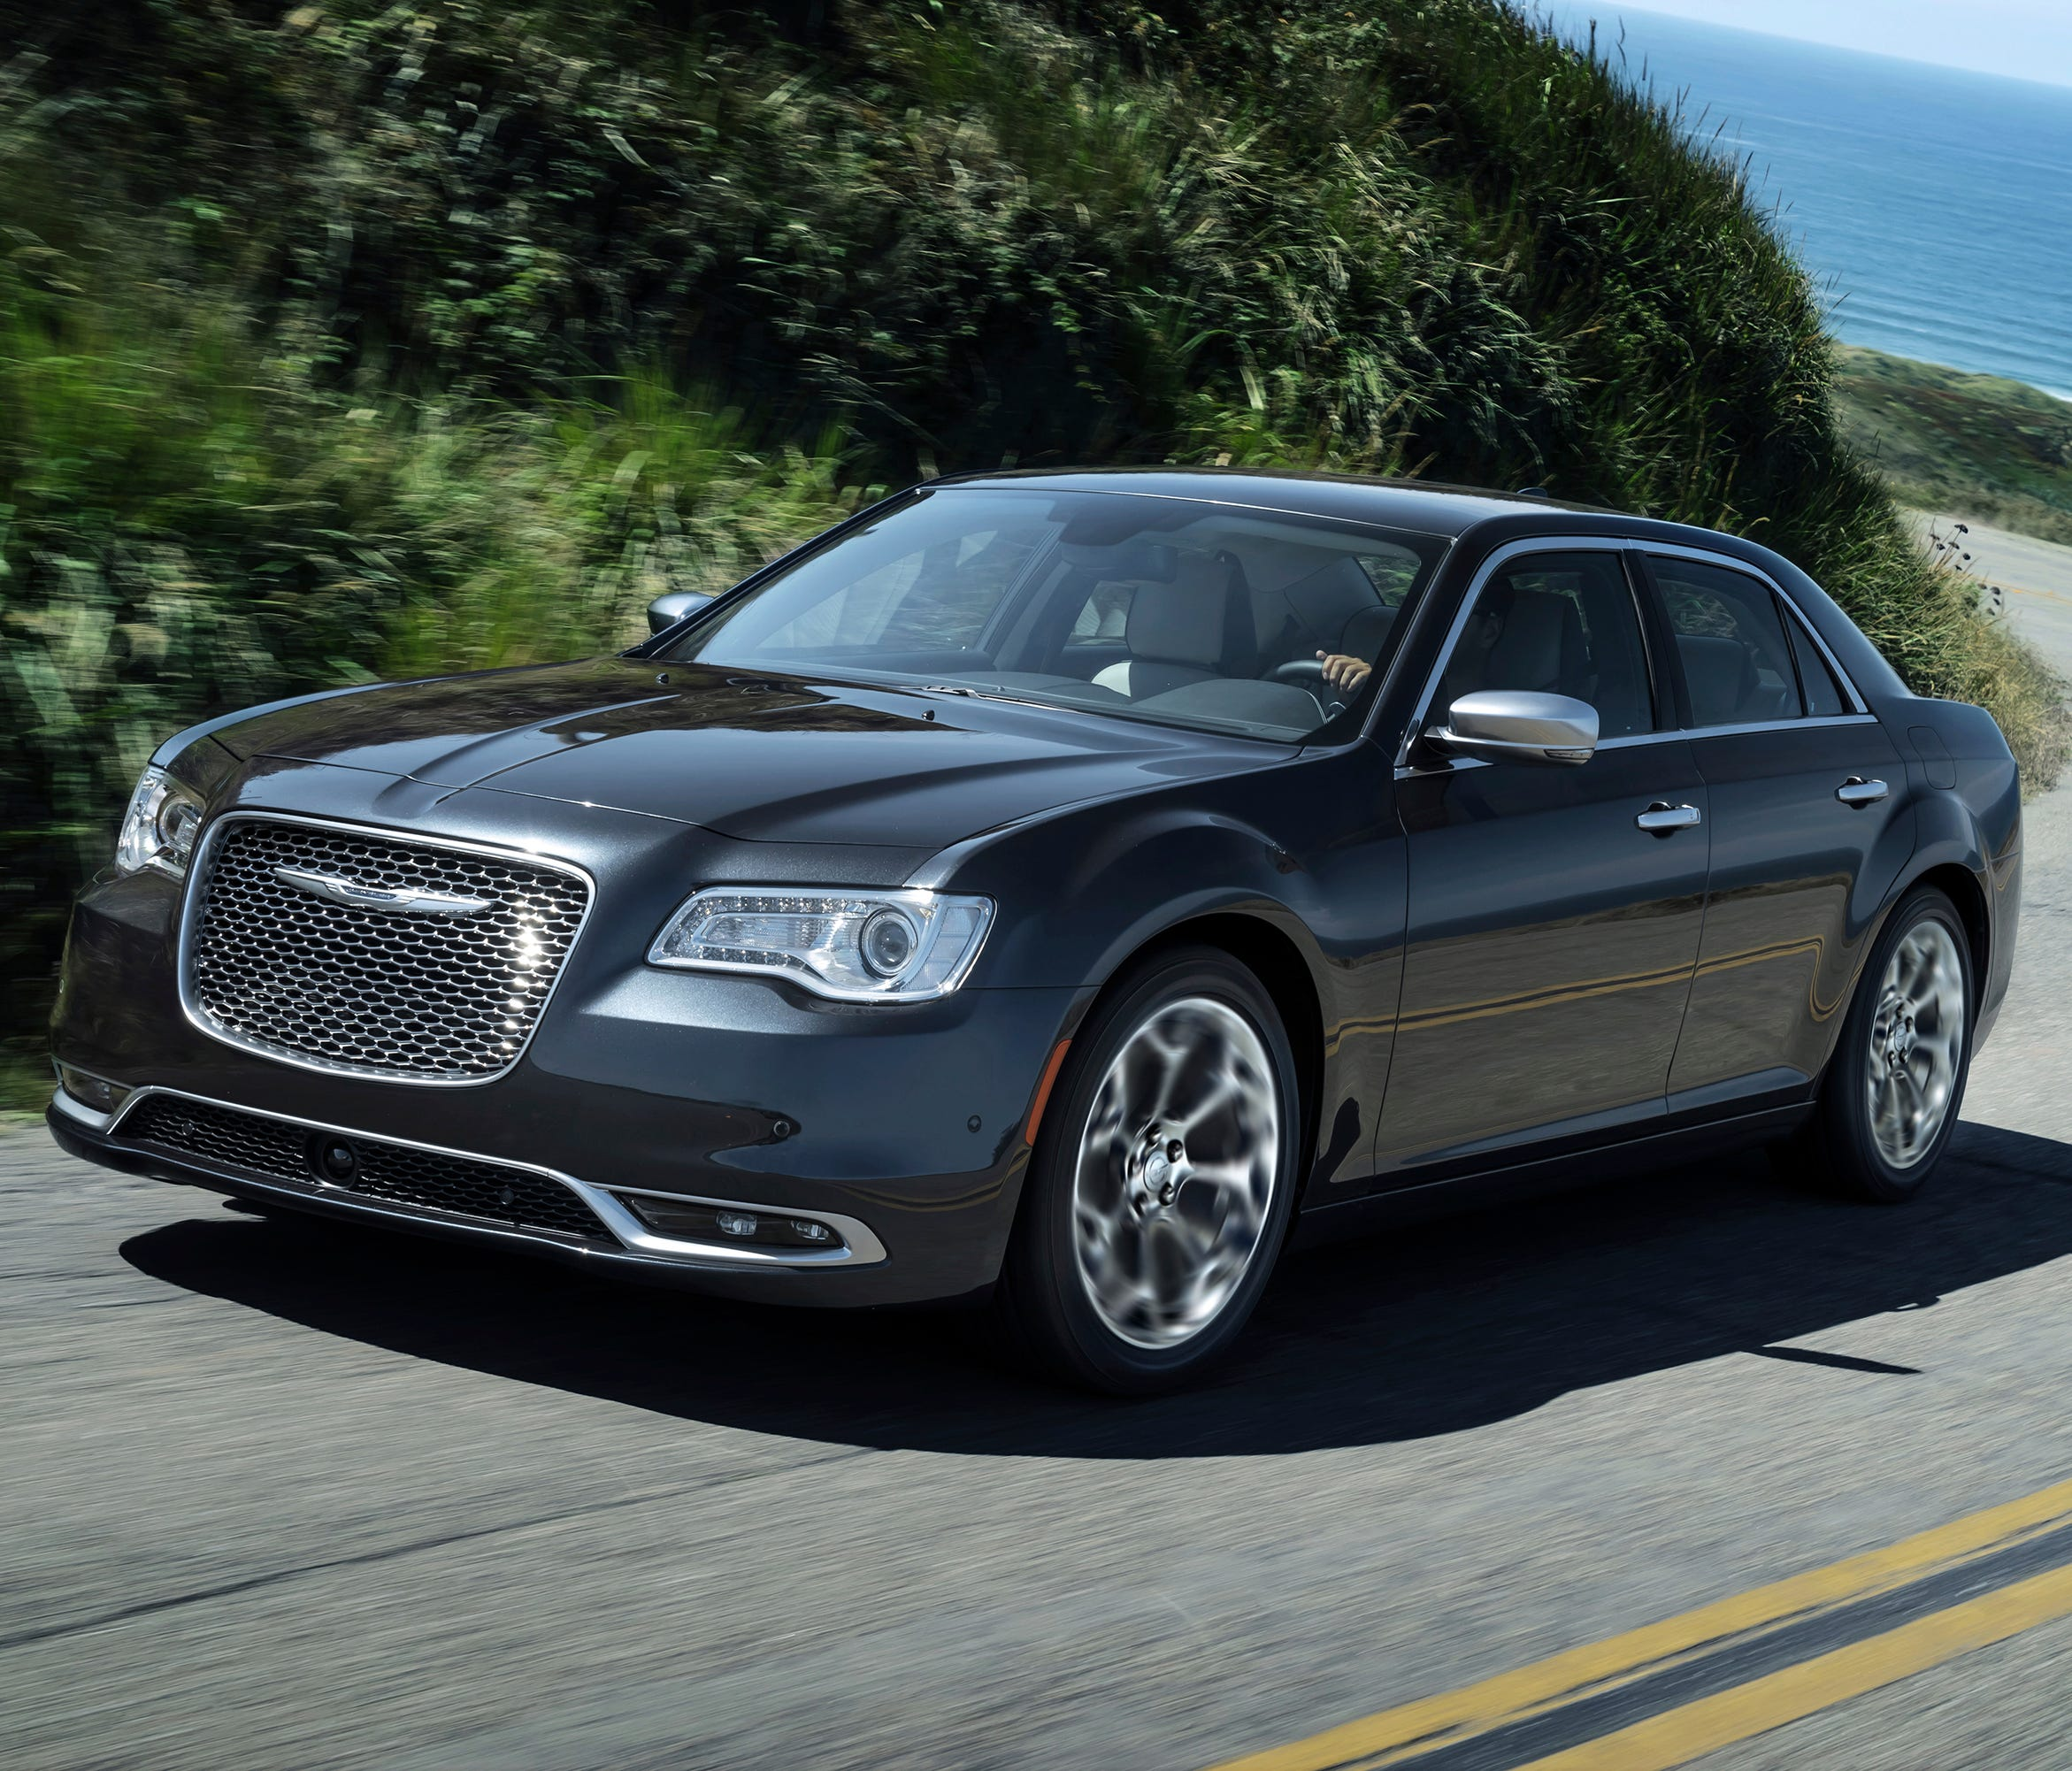 This photo provided by Fiat Chrysler shows the 2018 Chrysler 300, a vehicle that has a significant discount going into Memorial Day weekend. This large sedan has bold styling, a quiet ride and modern tech.